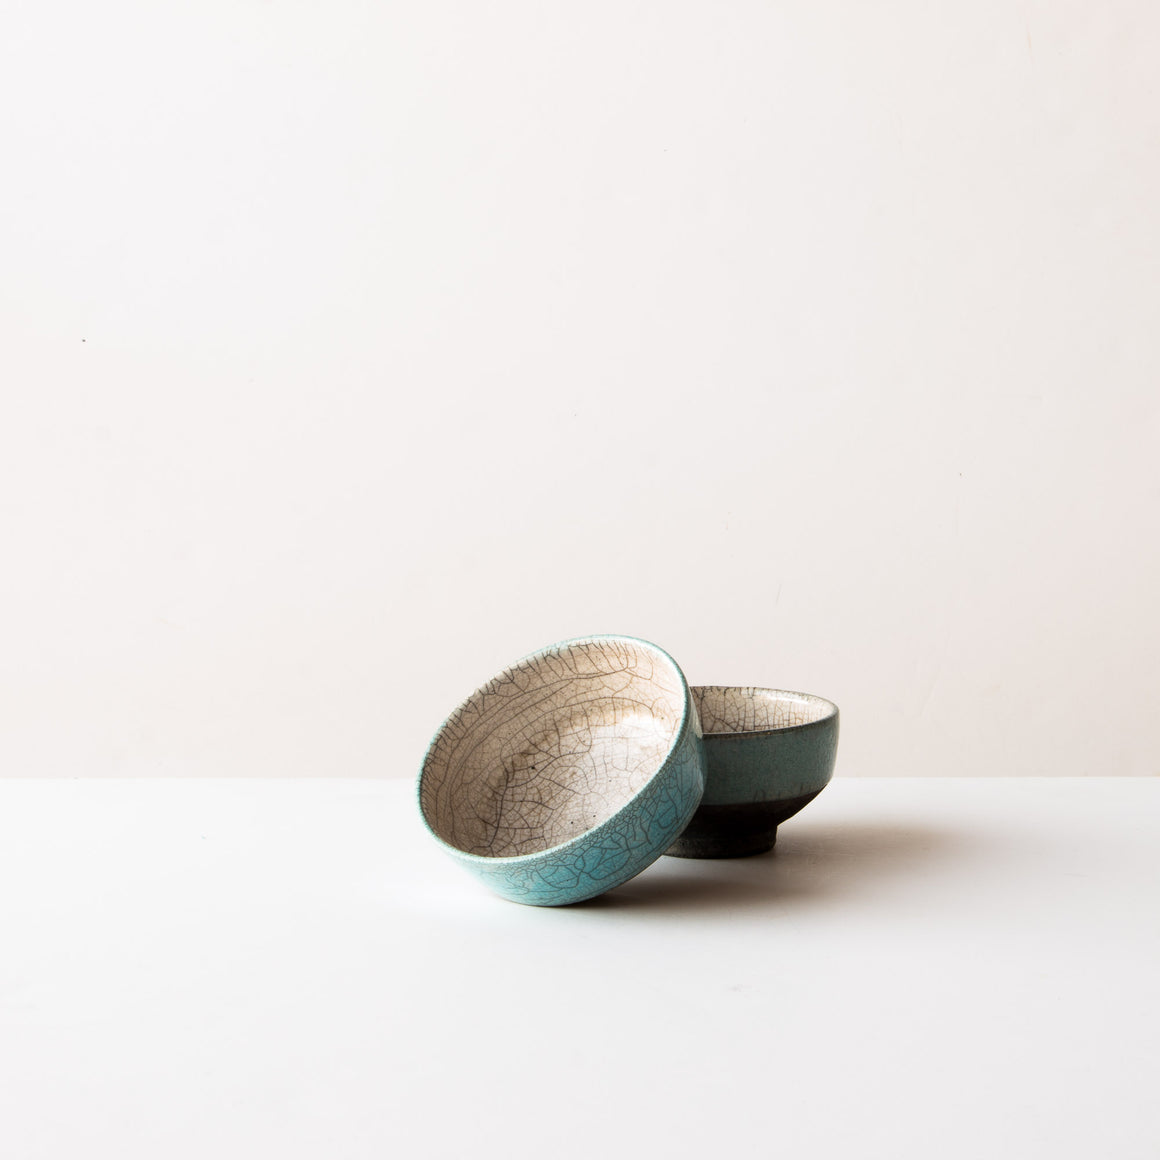 Piled Handmade Blue Raku Pottery Tea Bowls - Chawan Tea Bowls - Sold by Chic & Basta